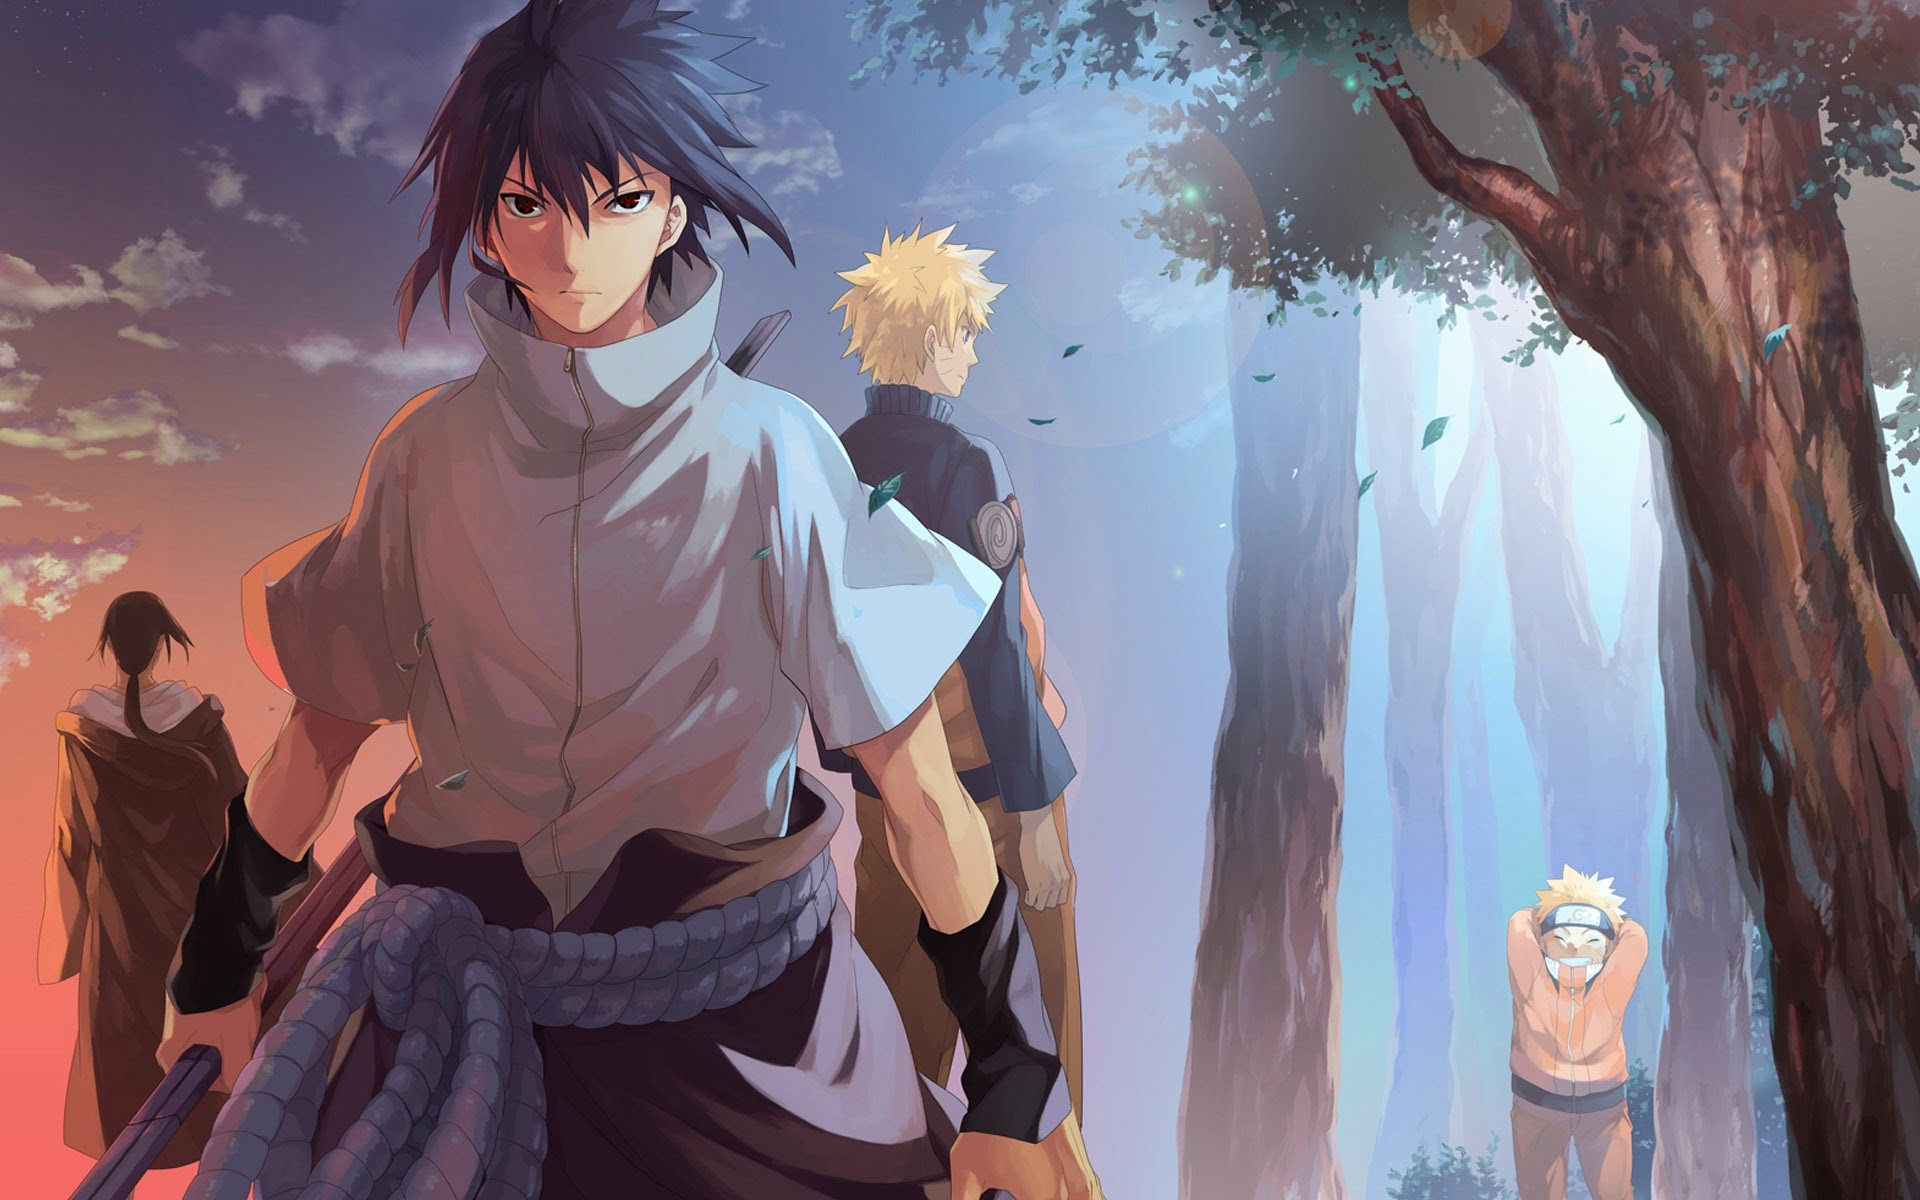 1920x1200 sasuke itachi uchiha brothers naruto anime hd wallpaper  7r.